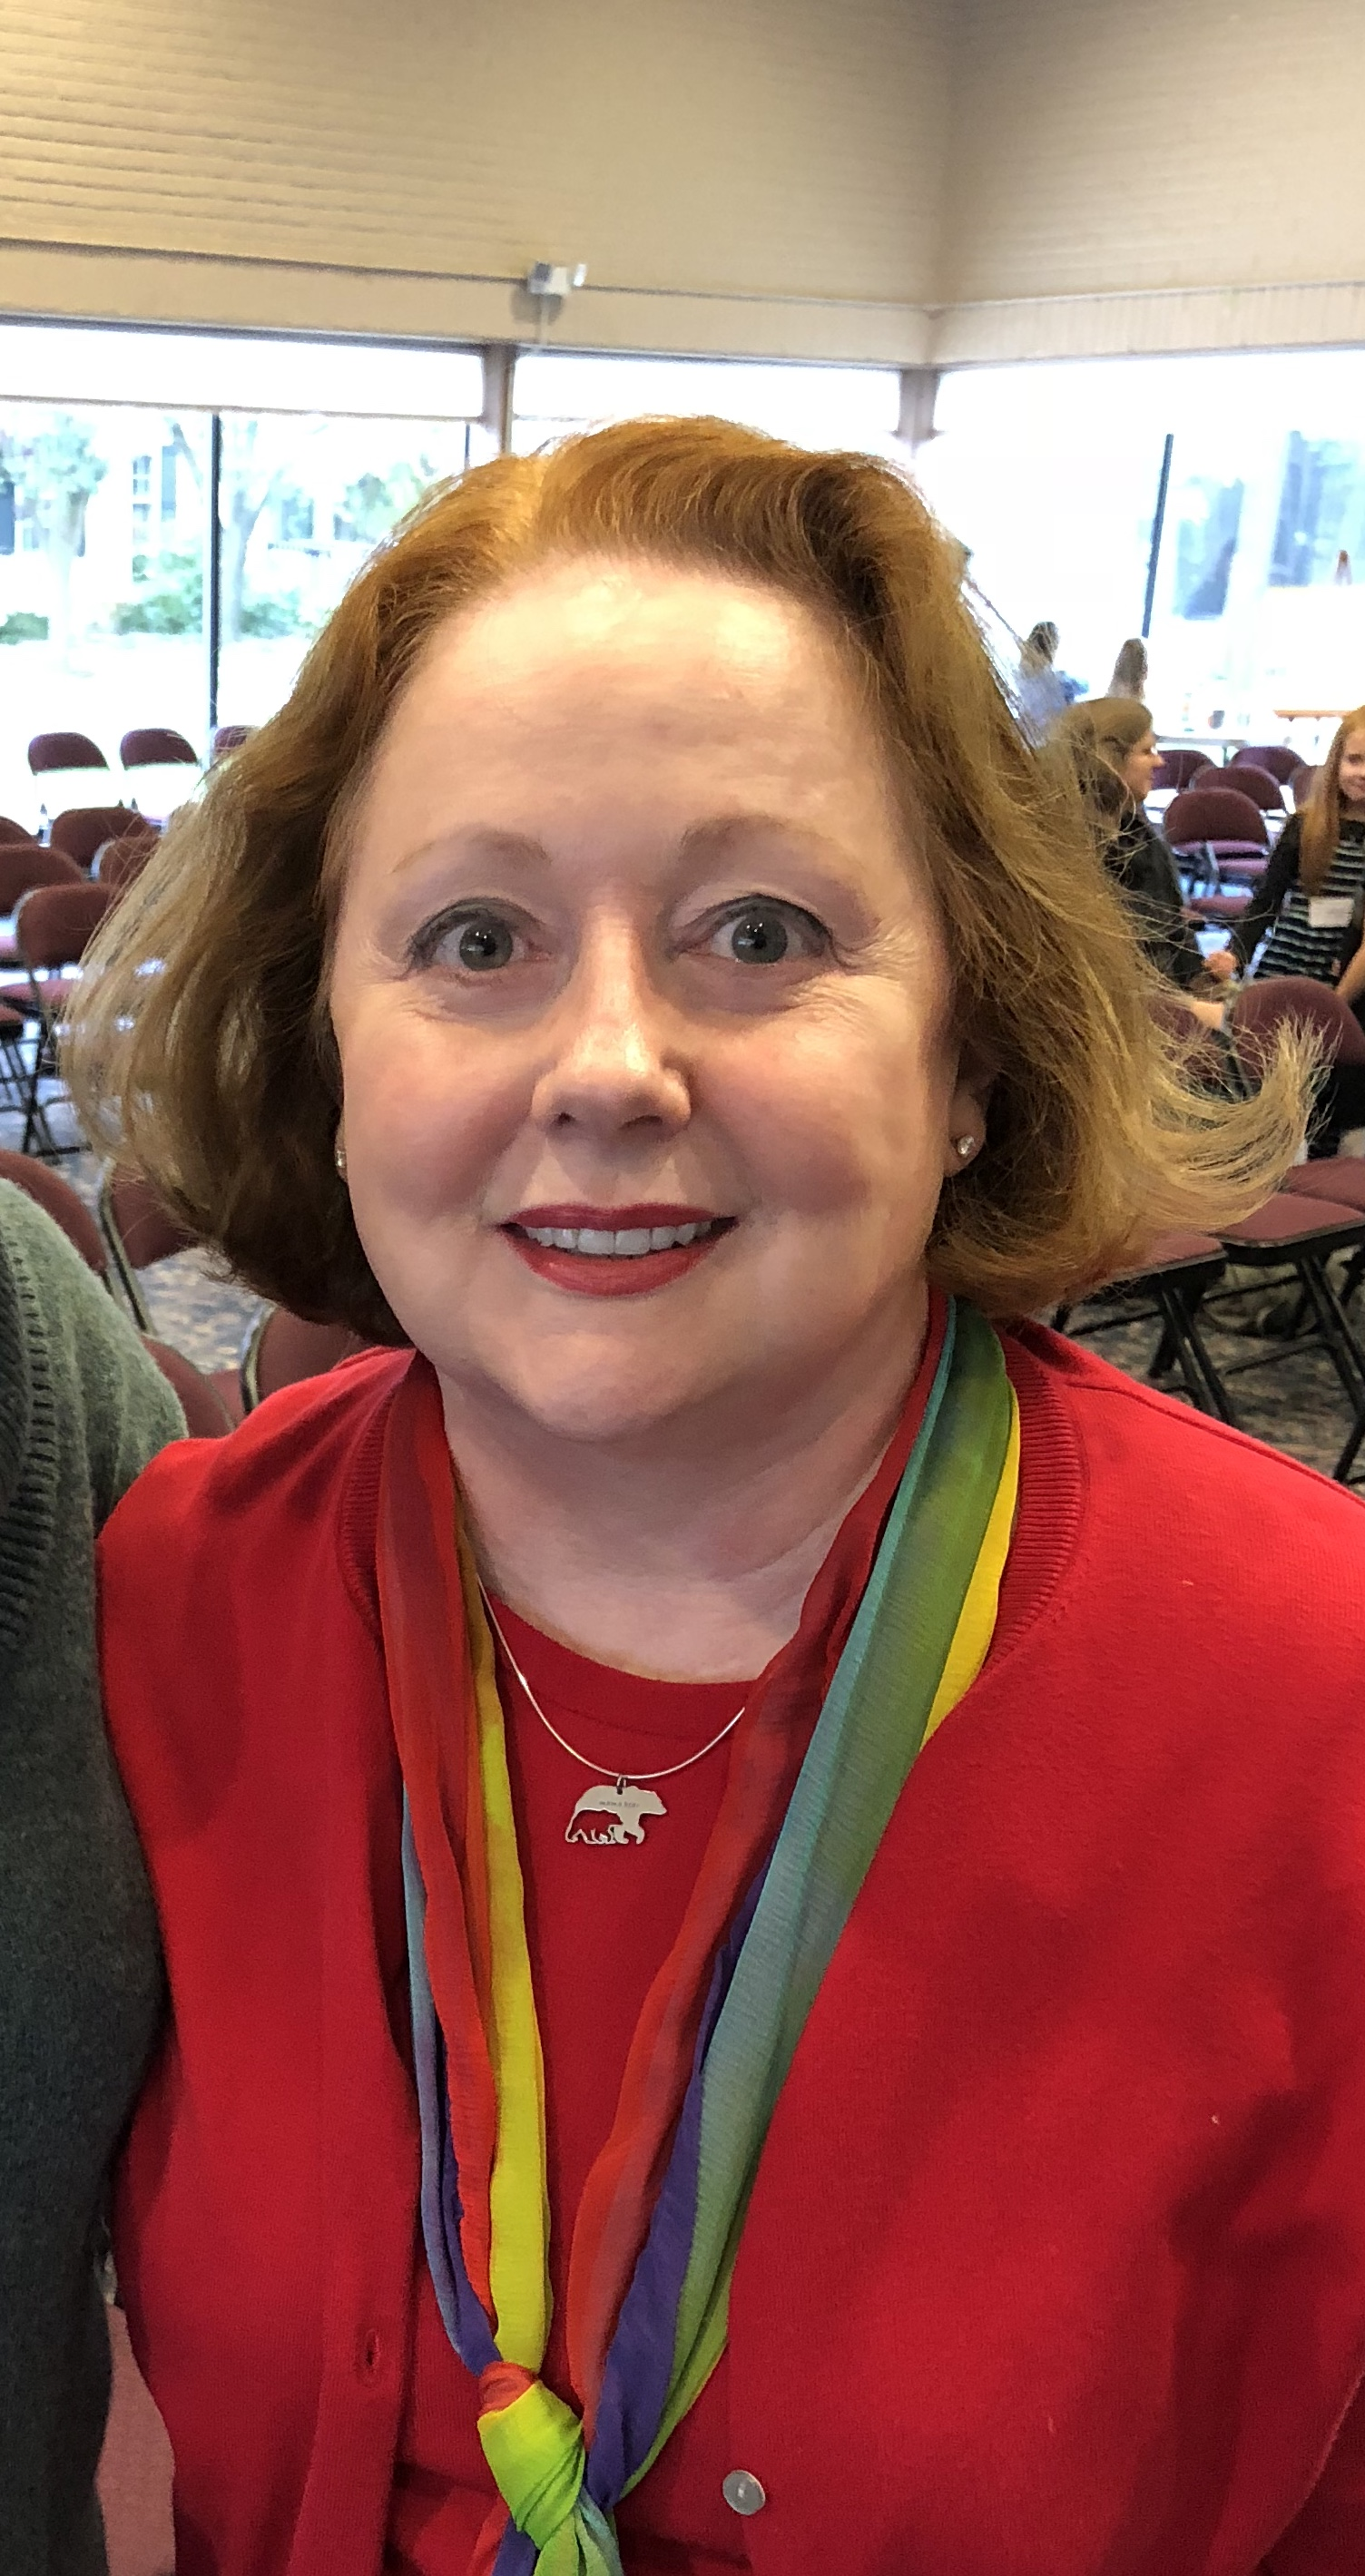 """Jaron Terry says she still has """"righteous rage"""" toward The United Methodist Church because of the treatment her family experienced after her son came out as homosexual in February of 2013. Photo courtesy of Jaron Terry."""